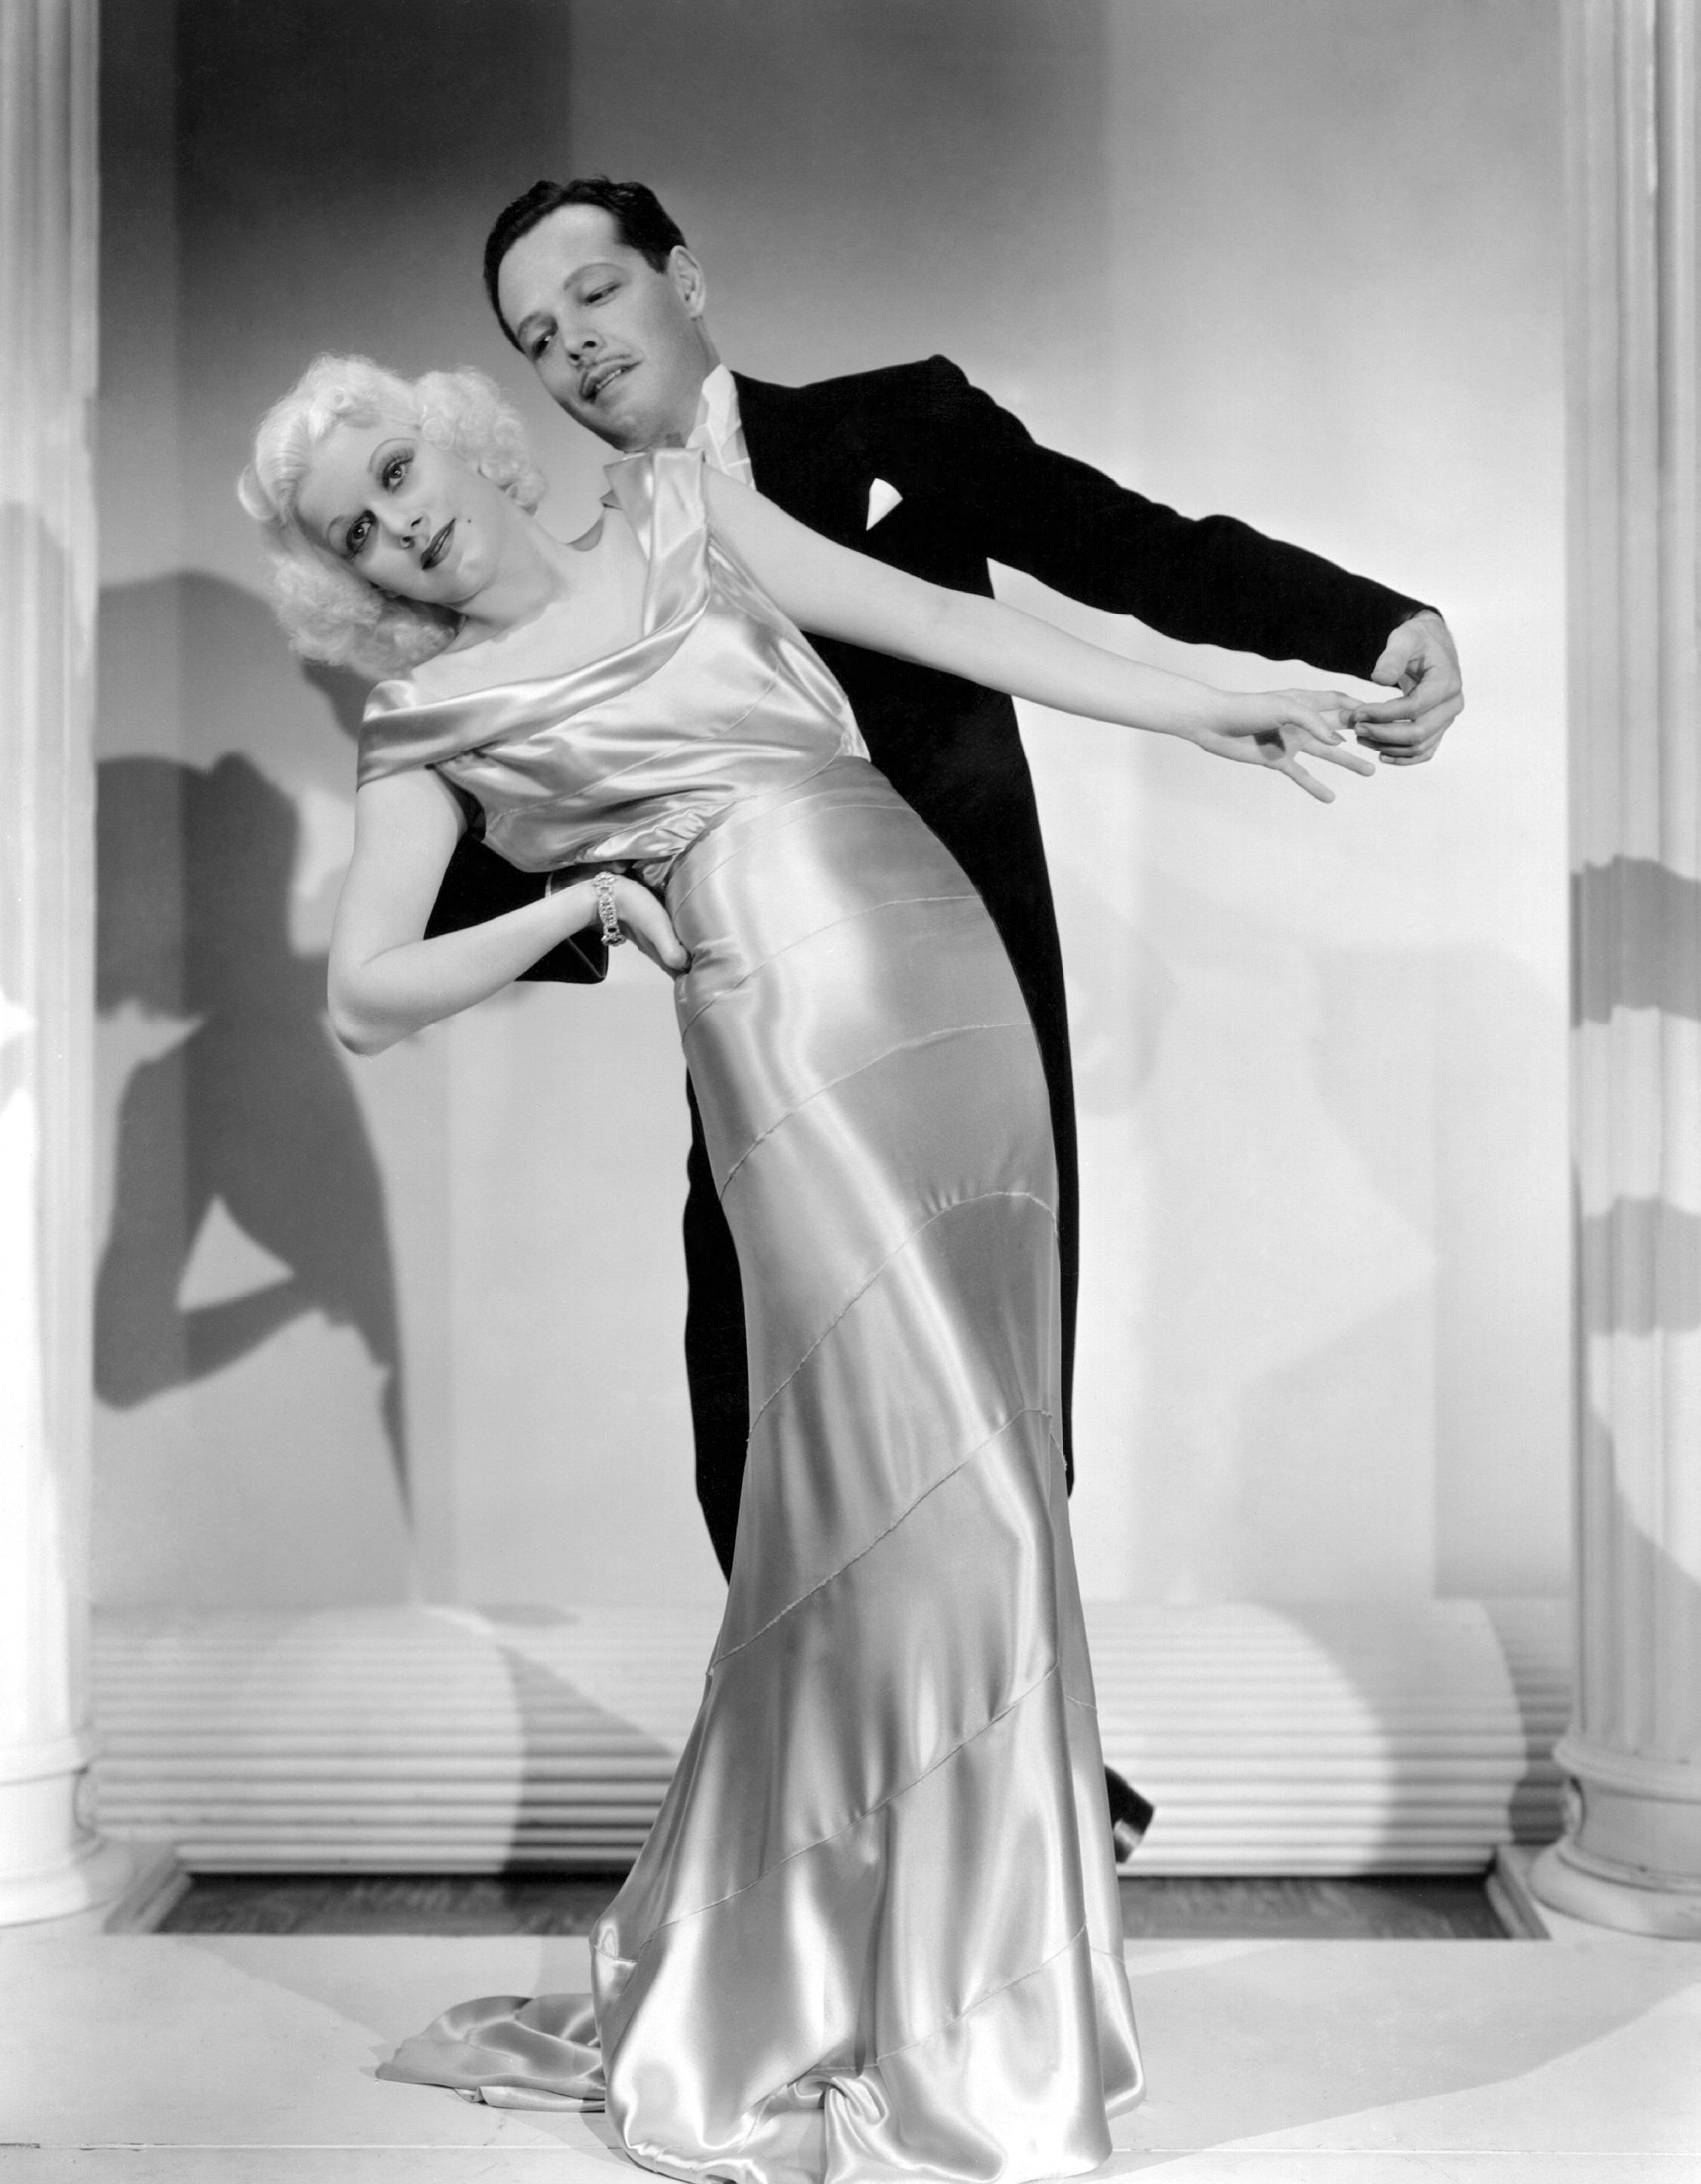 Jean Harlow in Reckless With Carl Randall